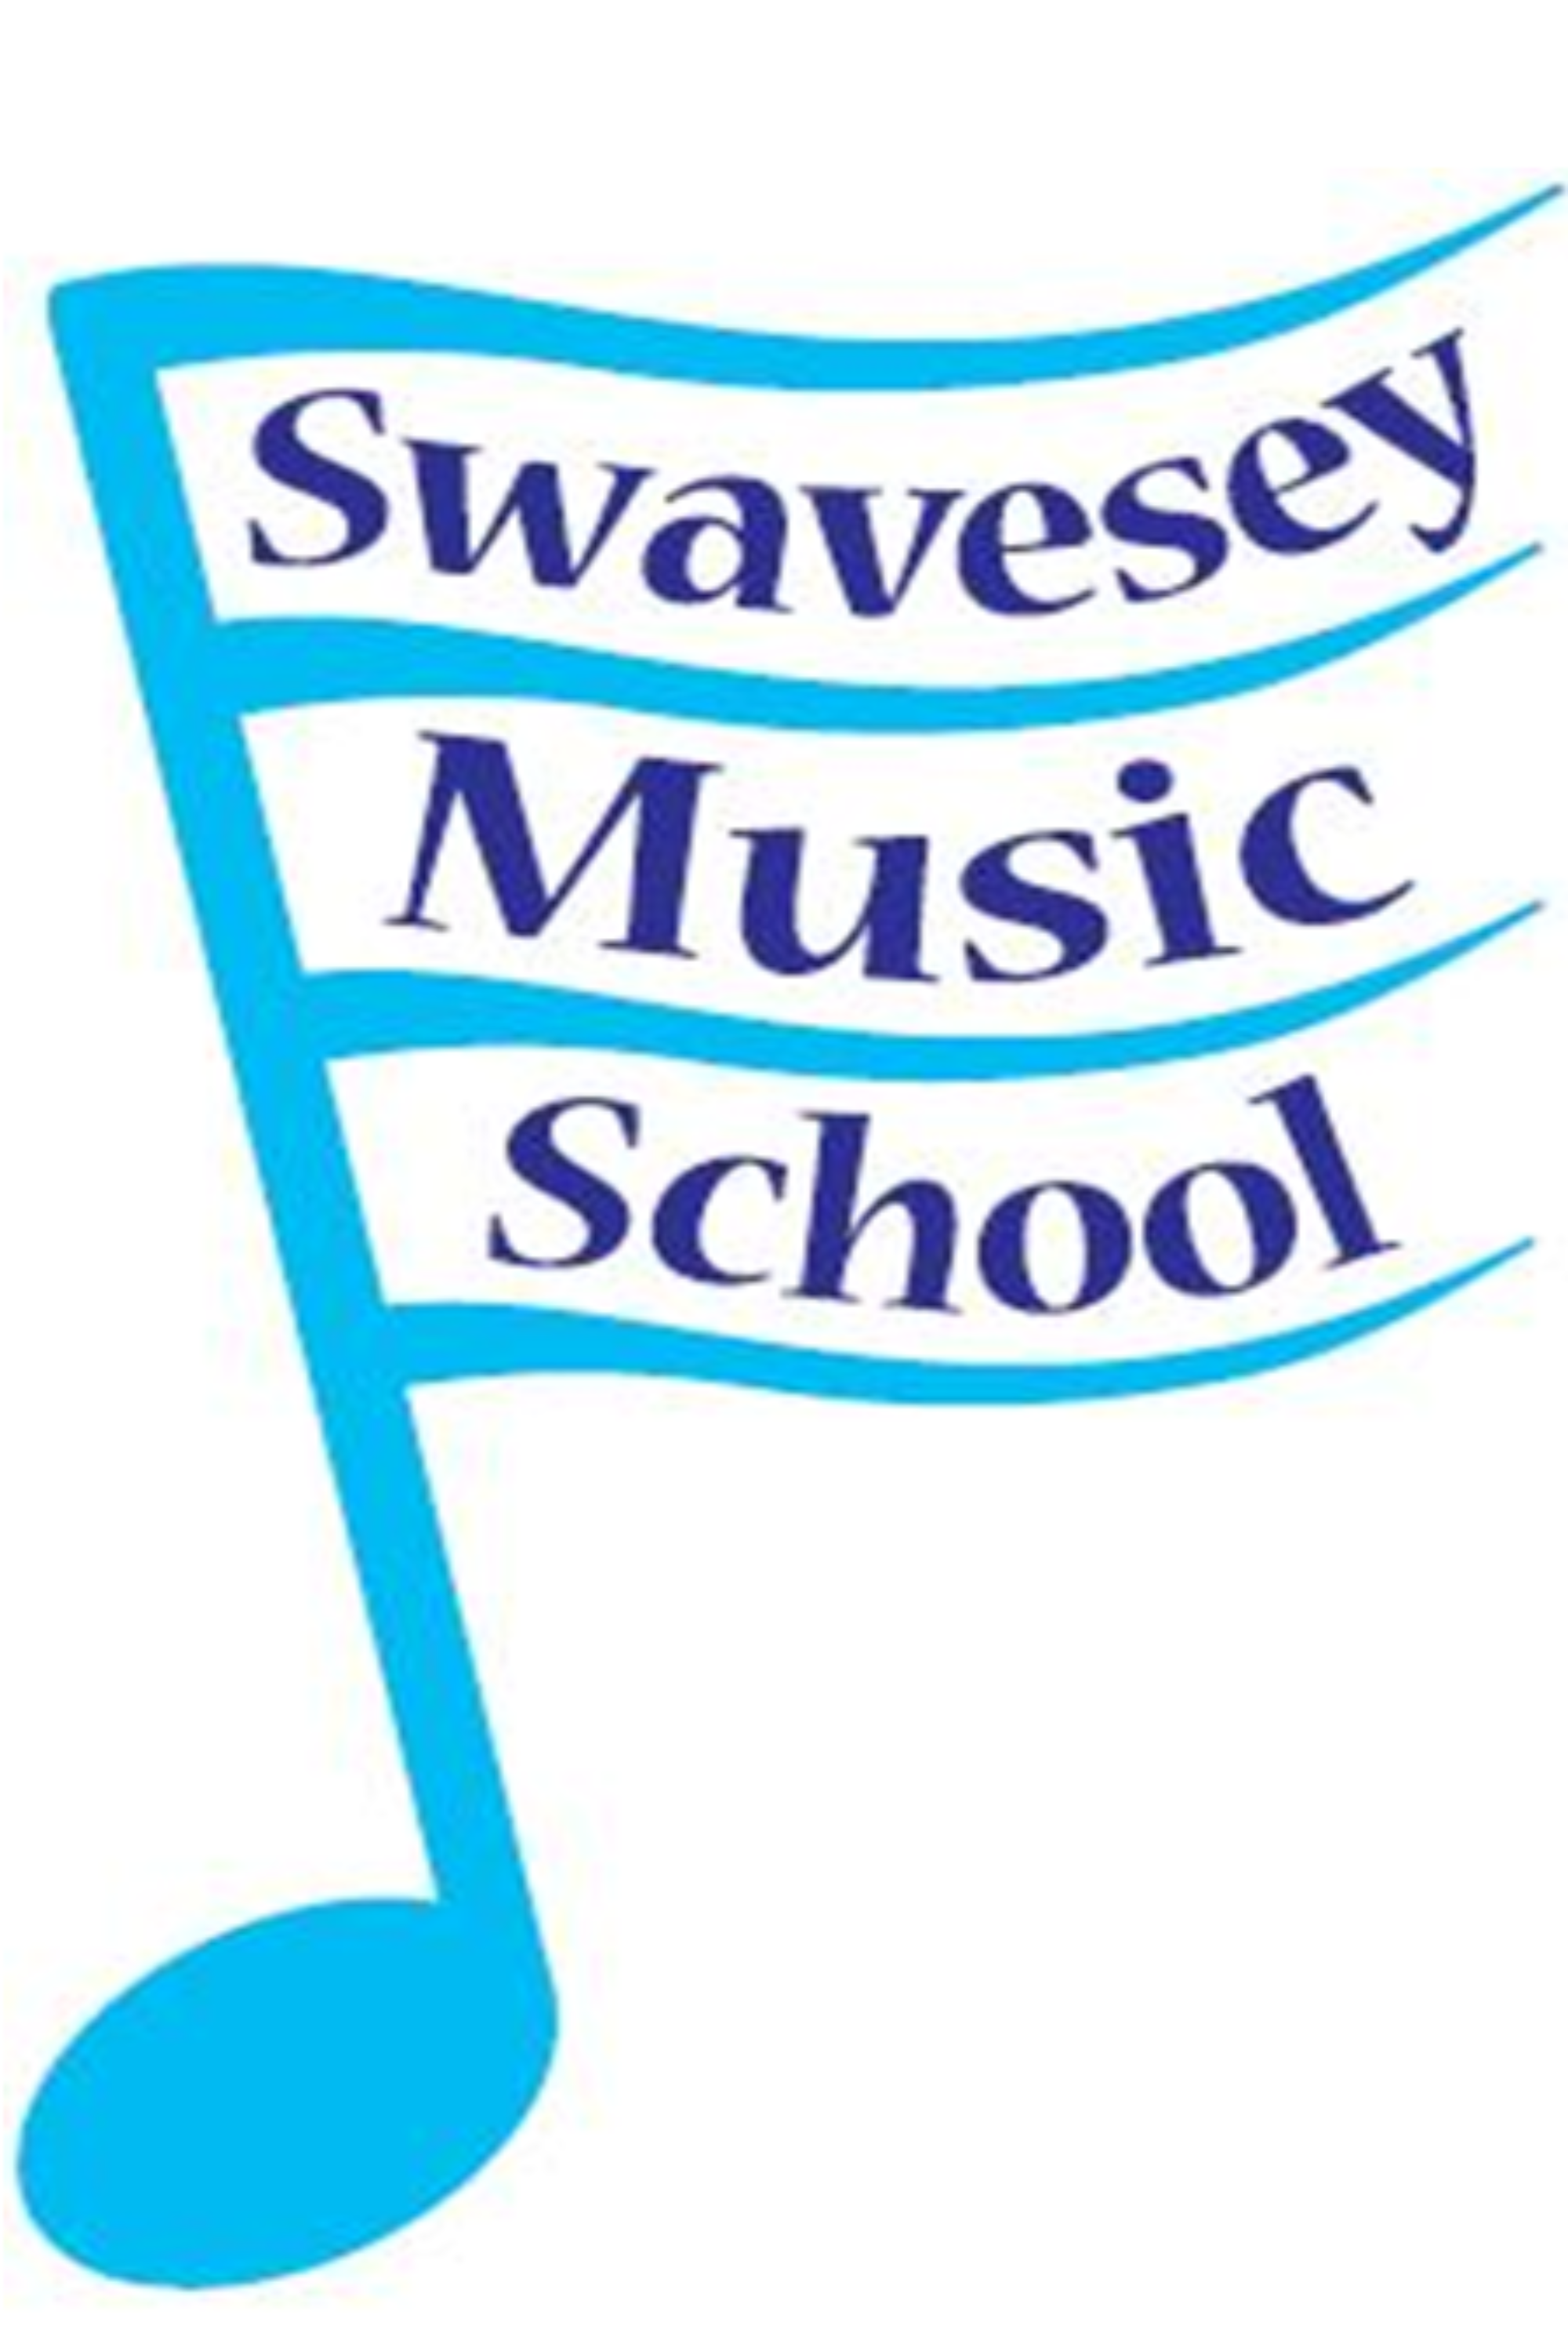 Swavesey Music School